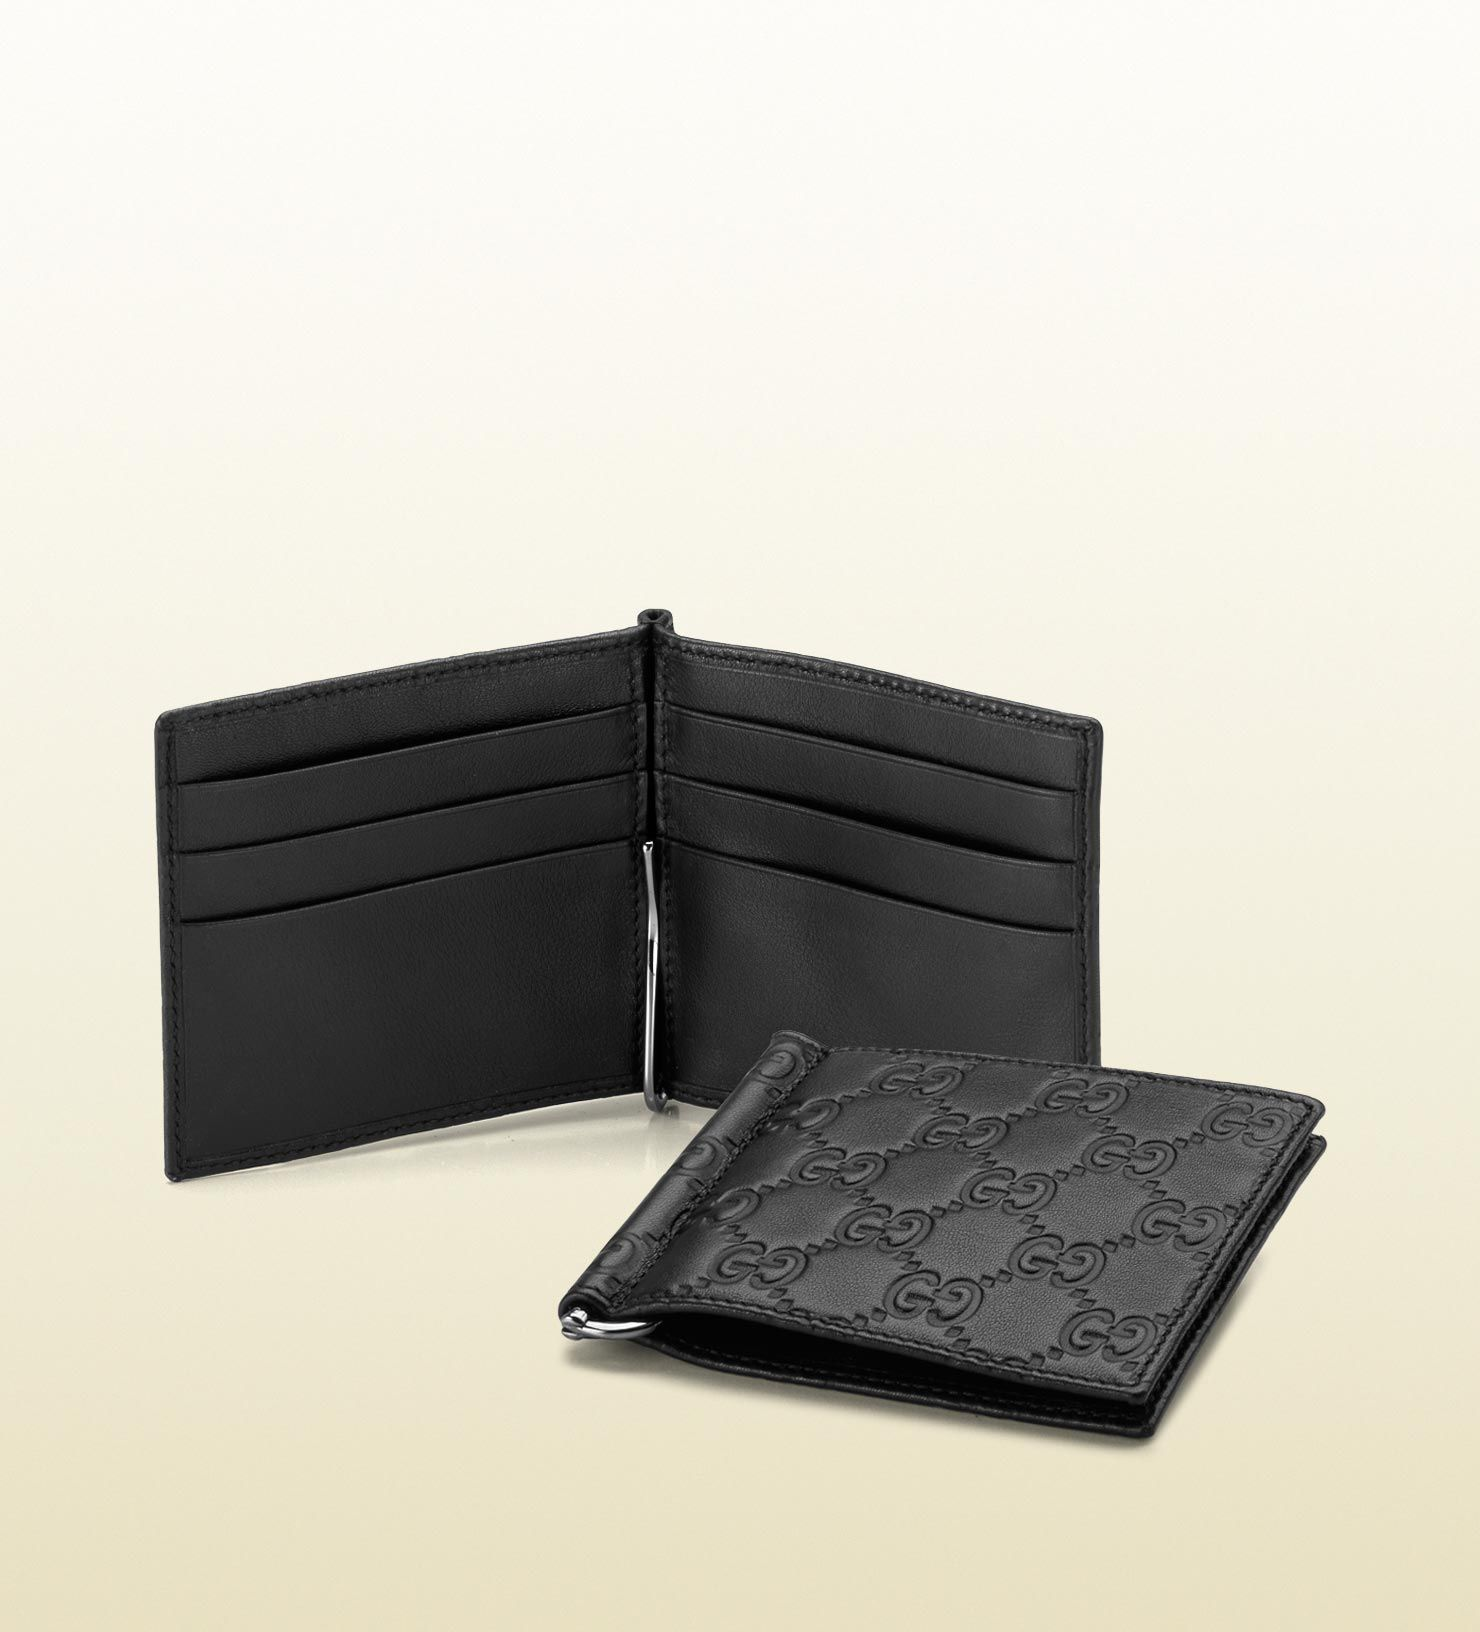 Guccissima Leather Money Clip Wallet Luxury Pinterest